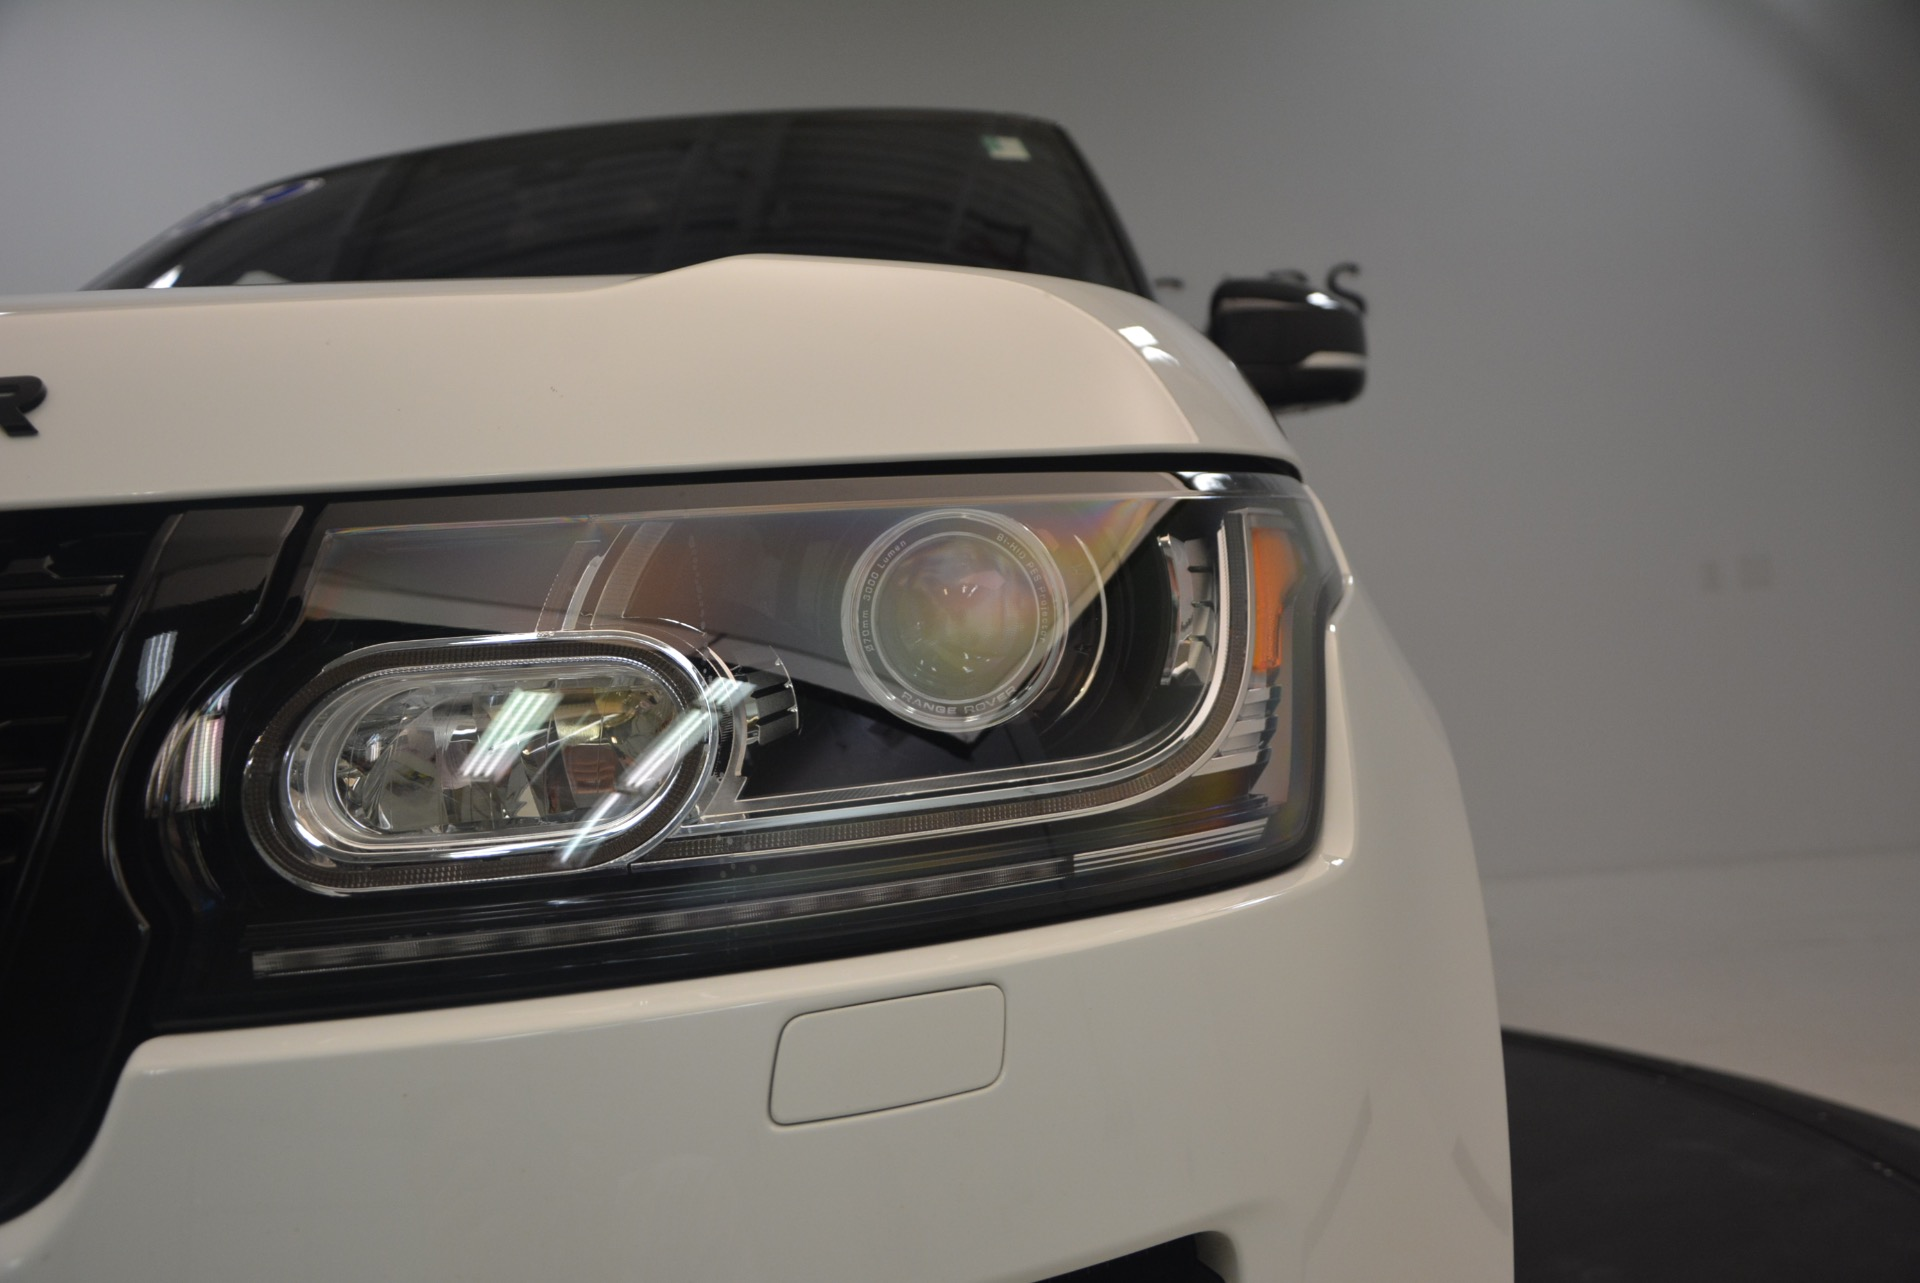 Used 2015 Land Rover Range Rover Supercharged For Sale In Westport, CT 1292_p14